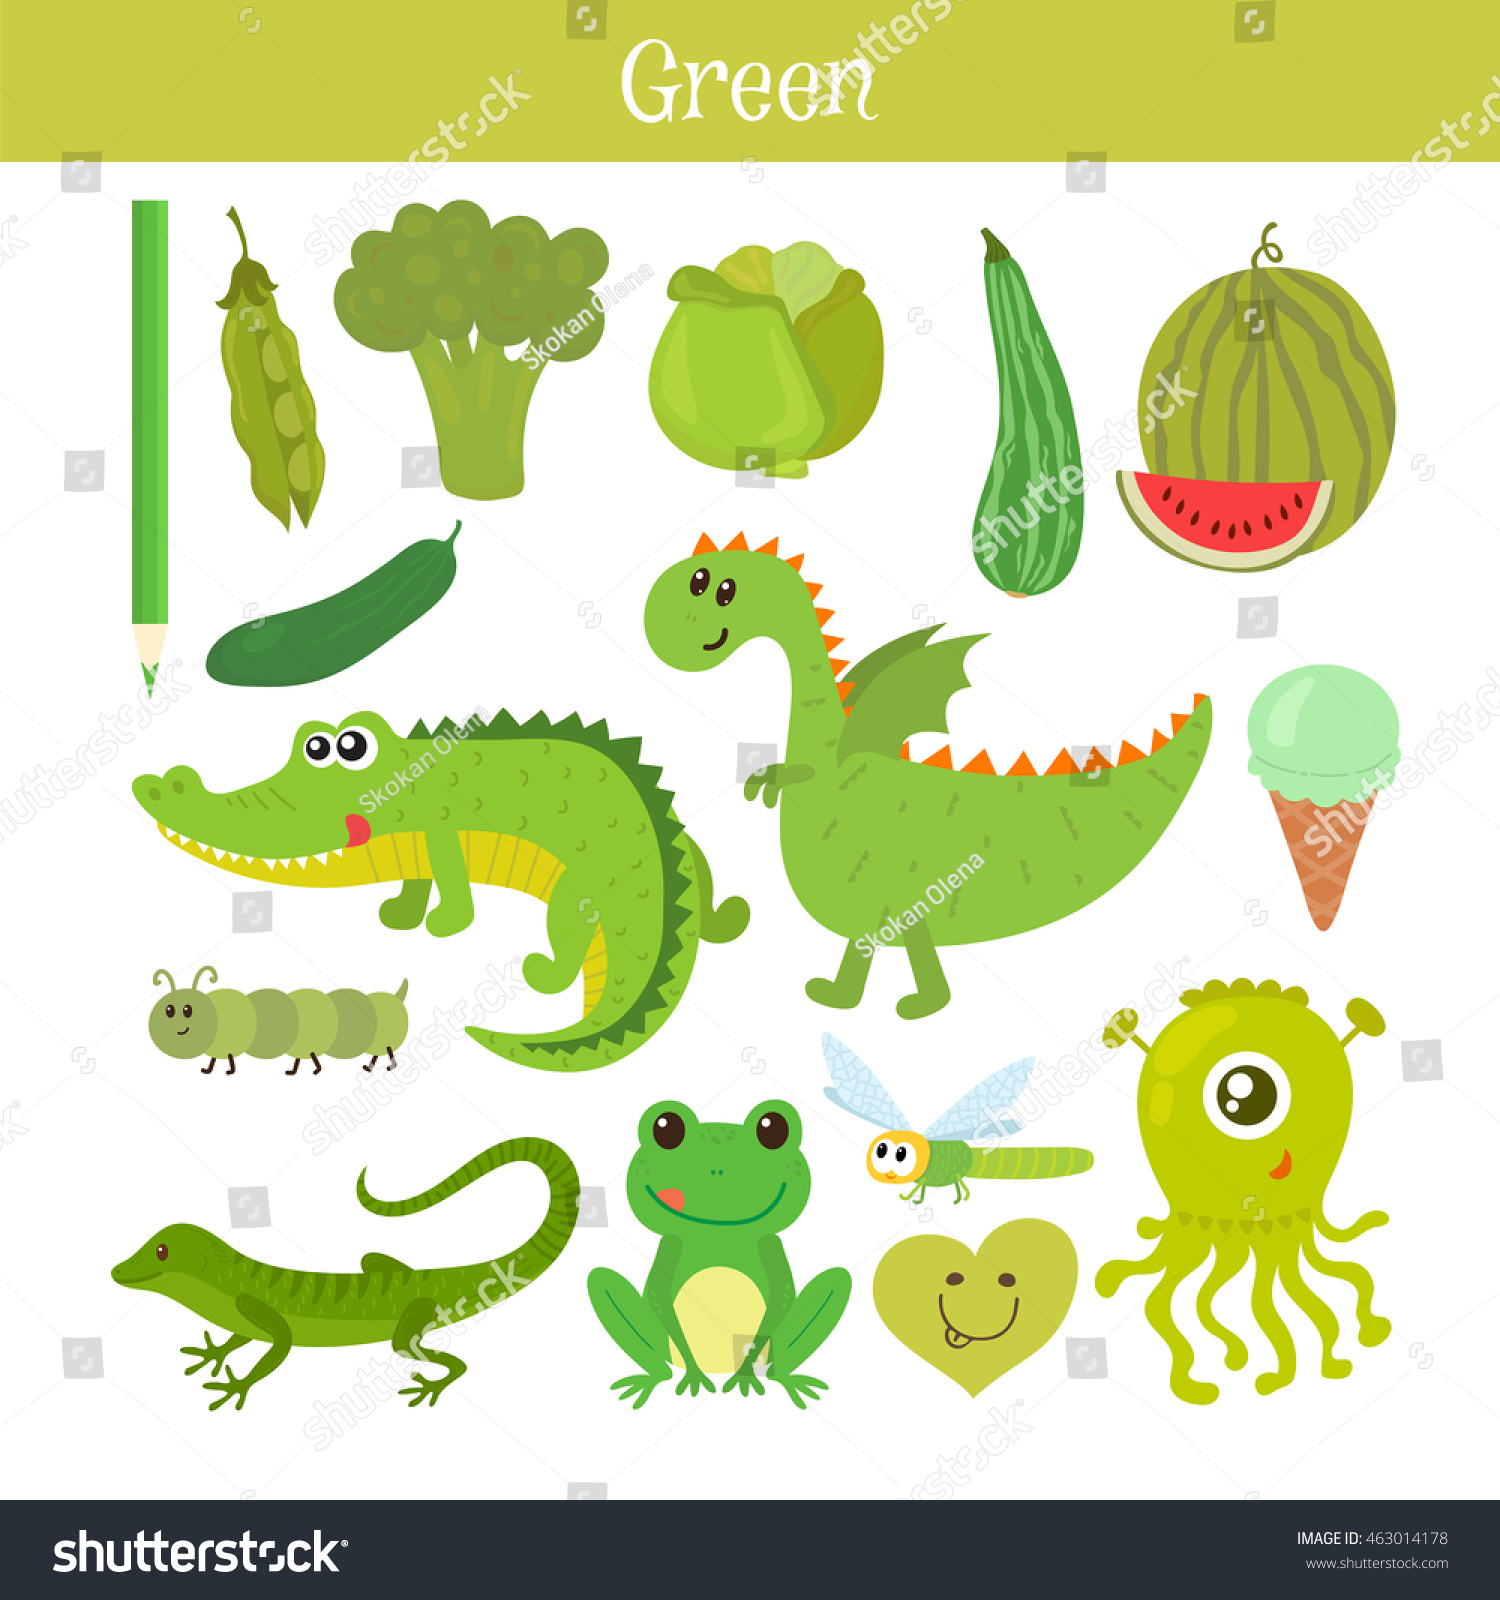 Green Learn Color Education Set Illustration Stock Vector HD ...